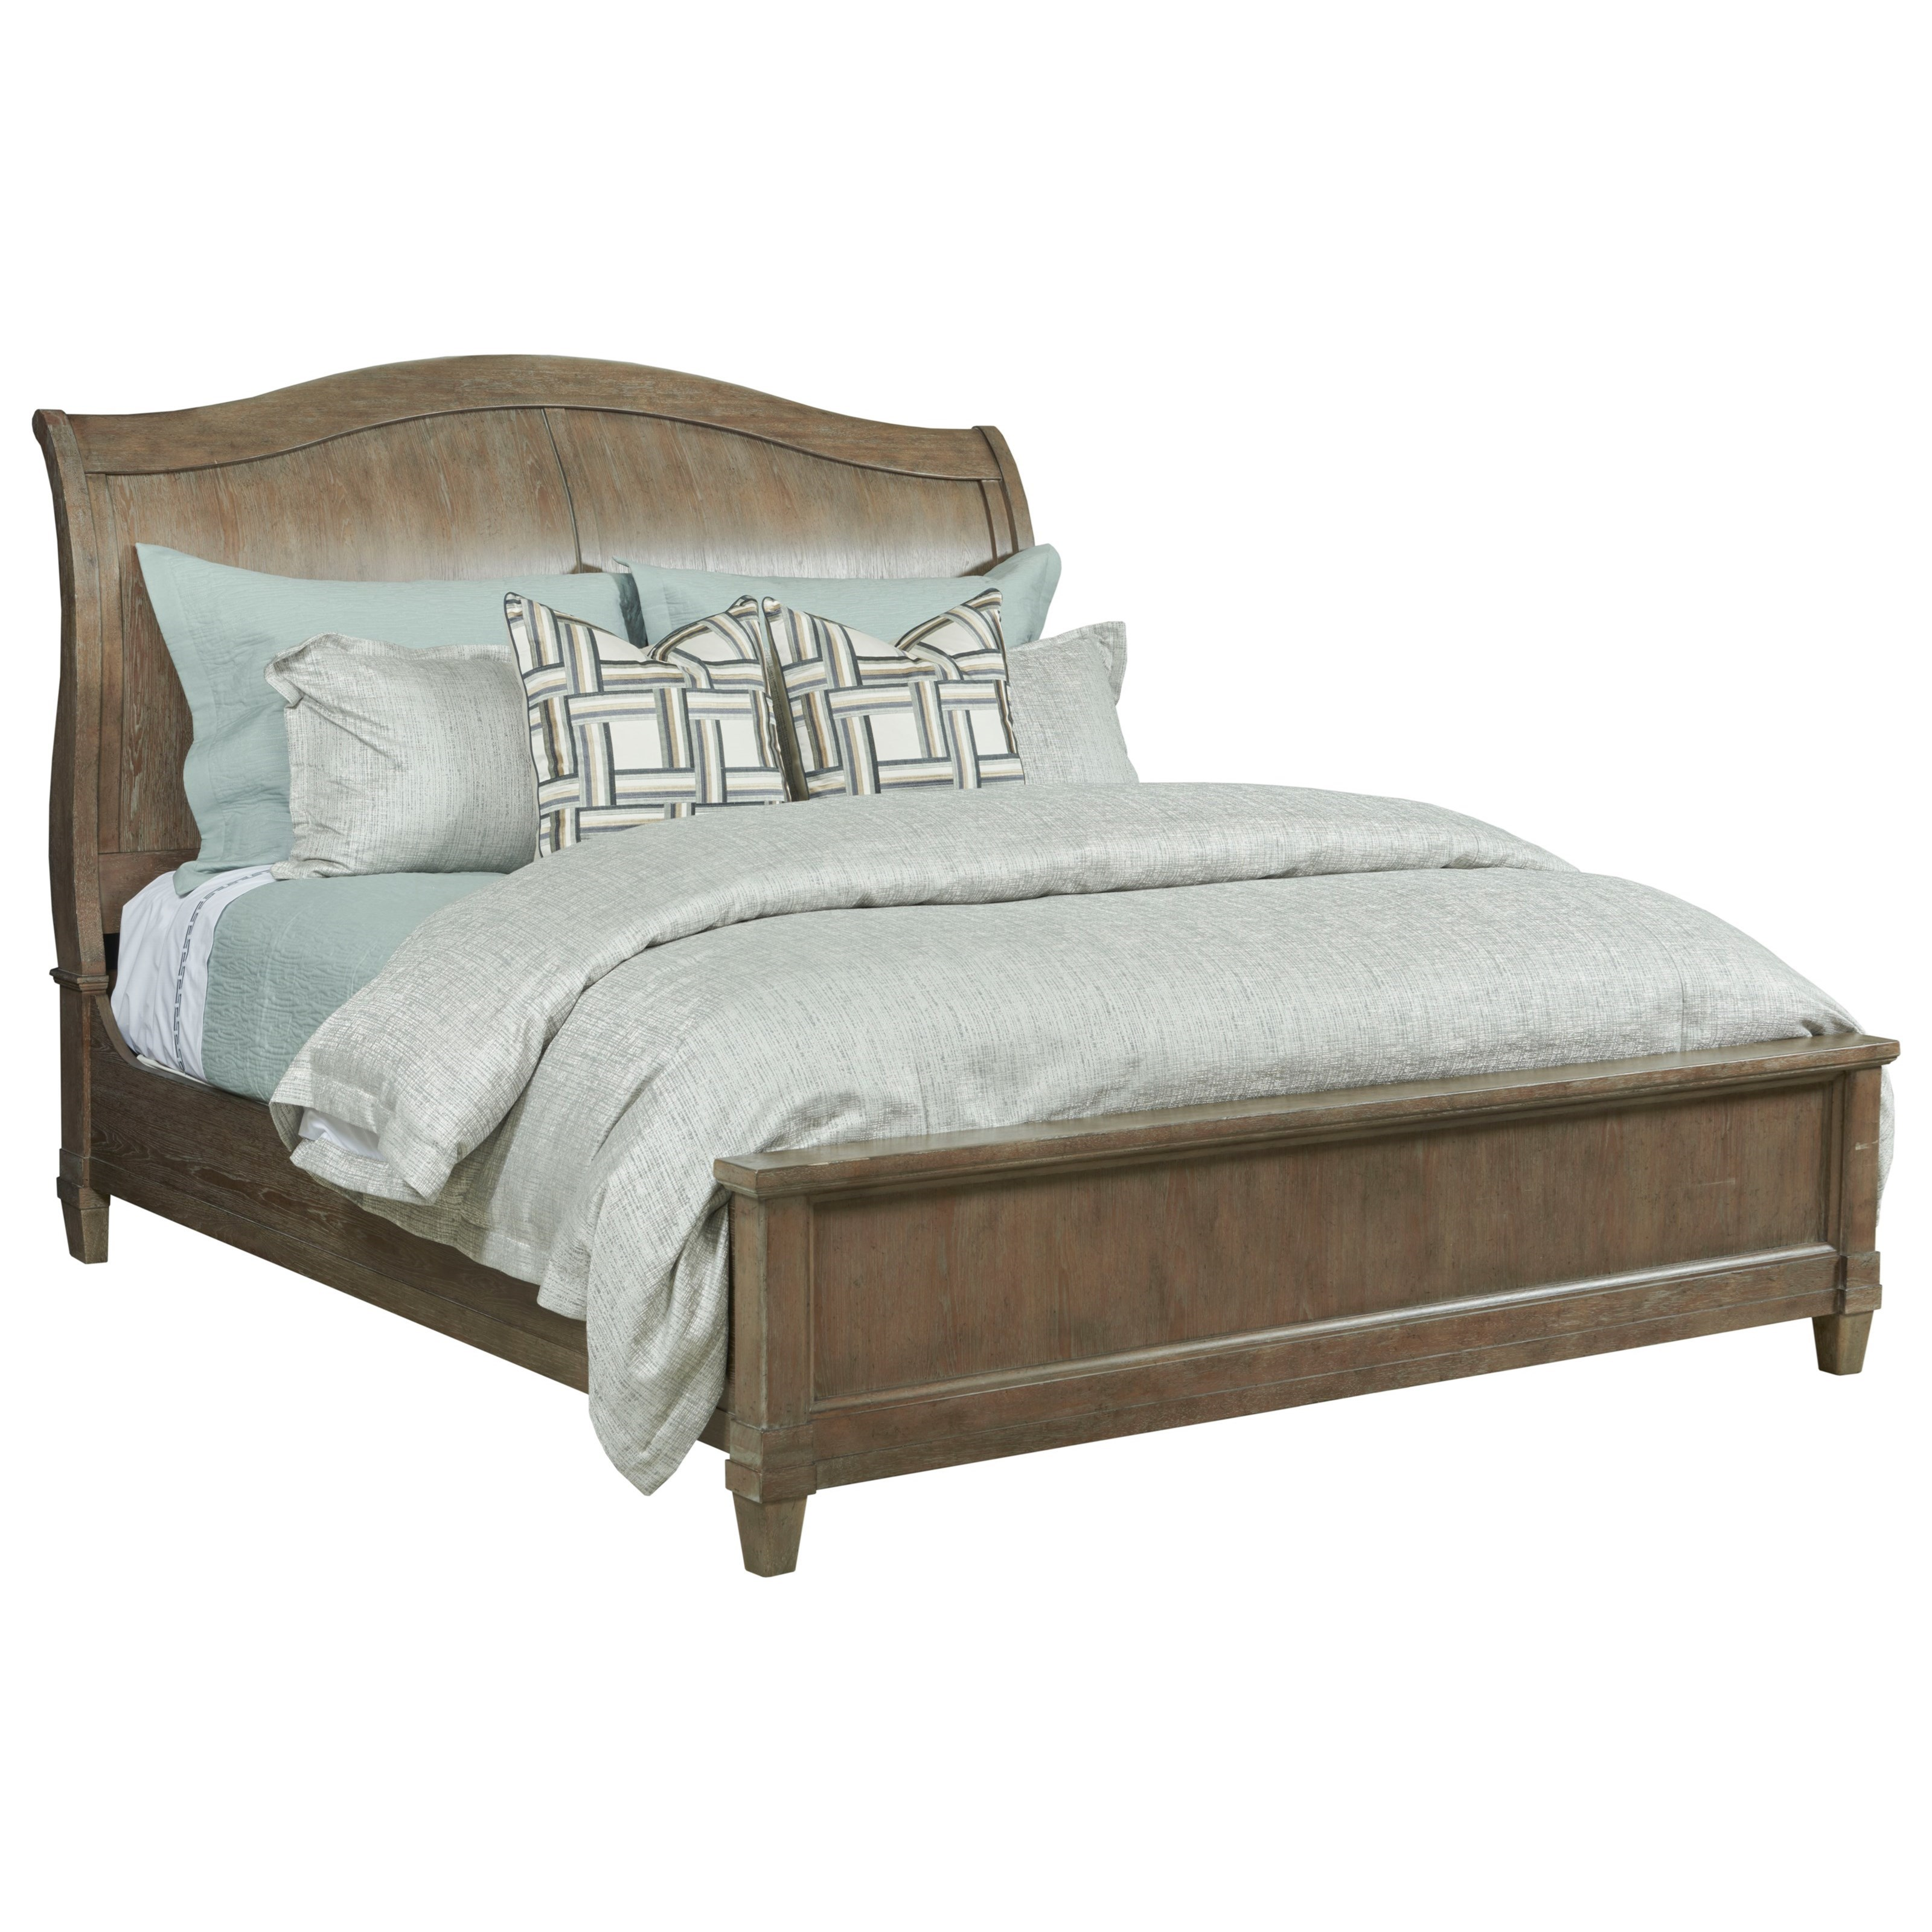 Anson Queen Sleigh Bed by Living Trends at Sprintz Furniture